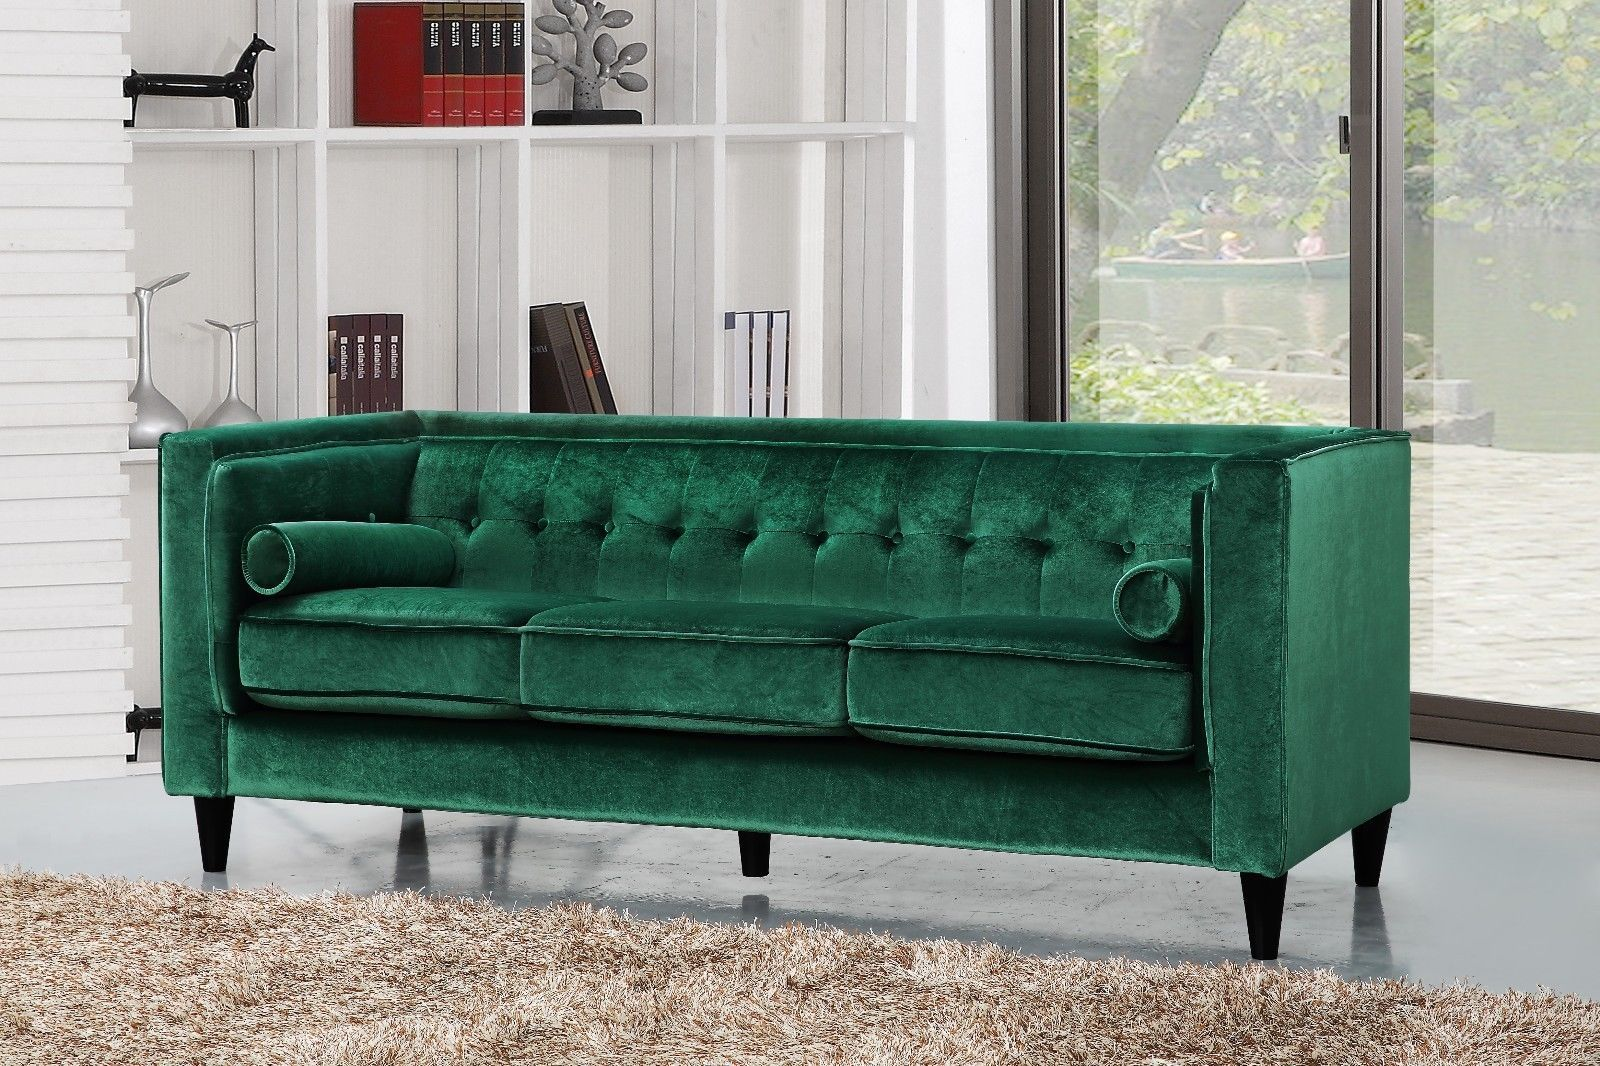 Meridian 642 Taylor Living Room Set 3pcs in Green Velvet Contemporary Style